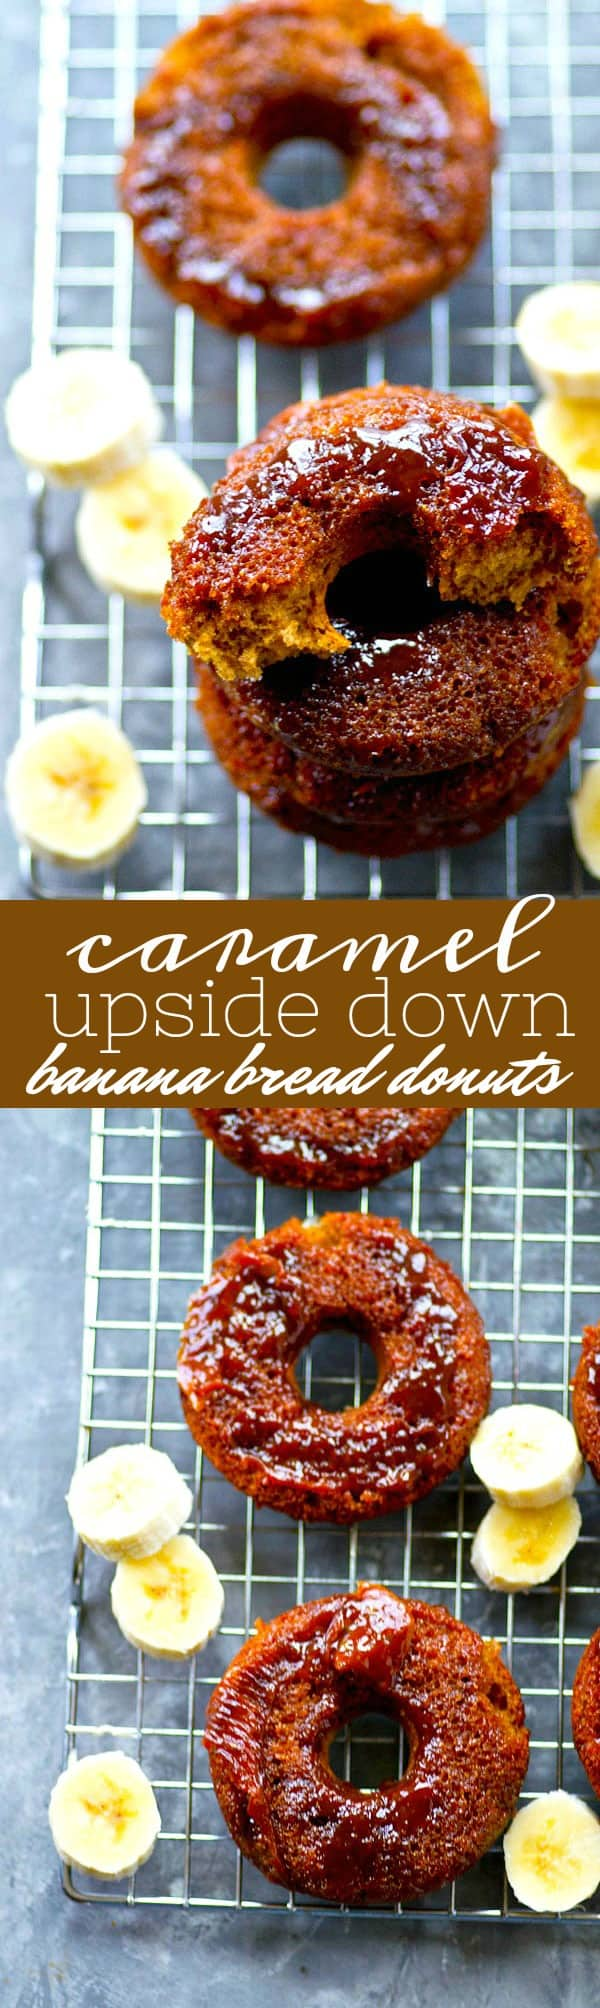 Incredibly soft banana bread donuts are baked upside-down style with a luscious homemade caramel sauce.---just try to eat only one!